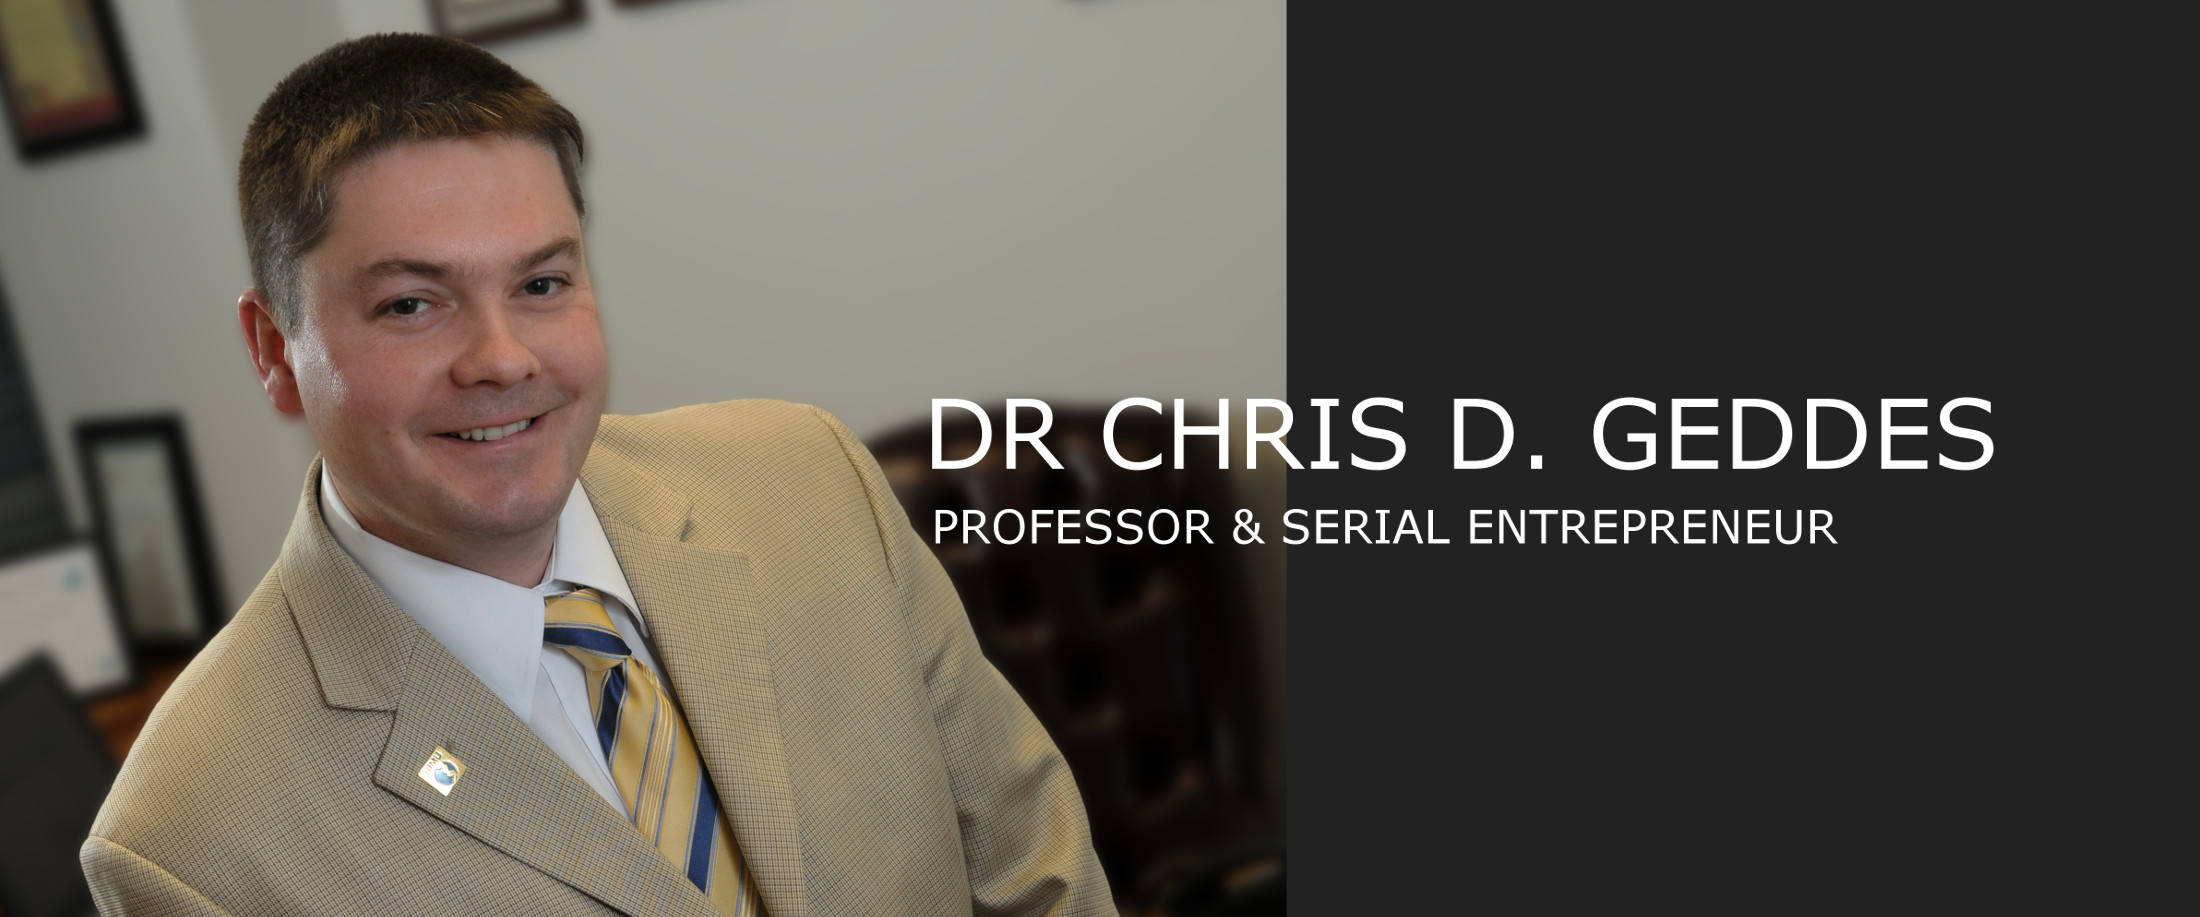 Chris D. Geddes